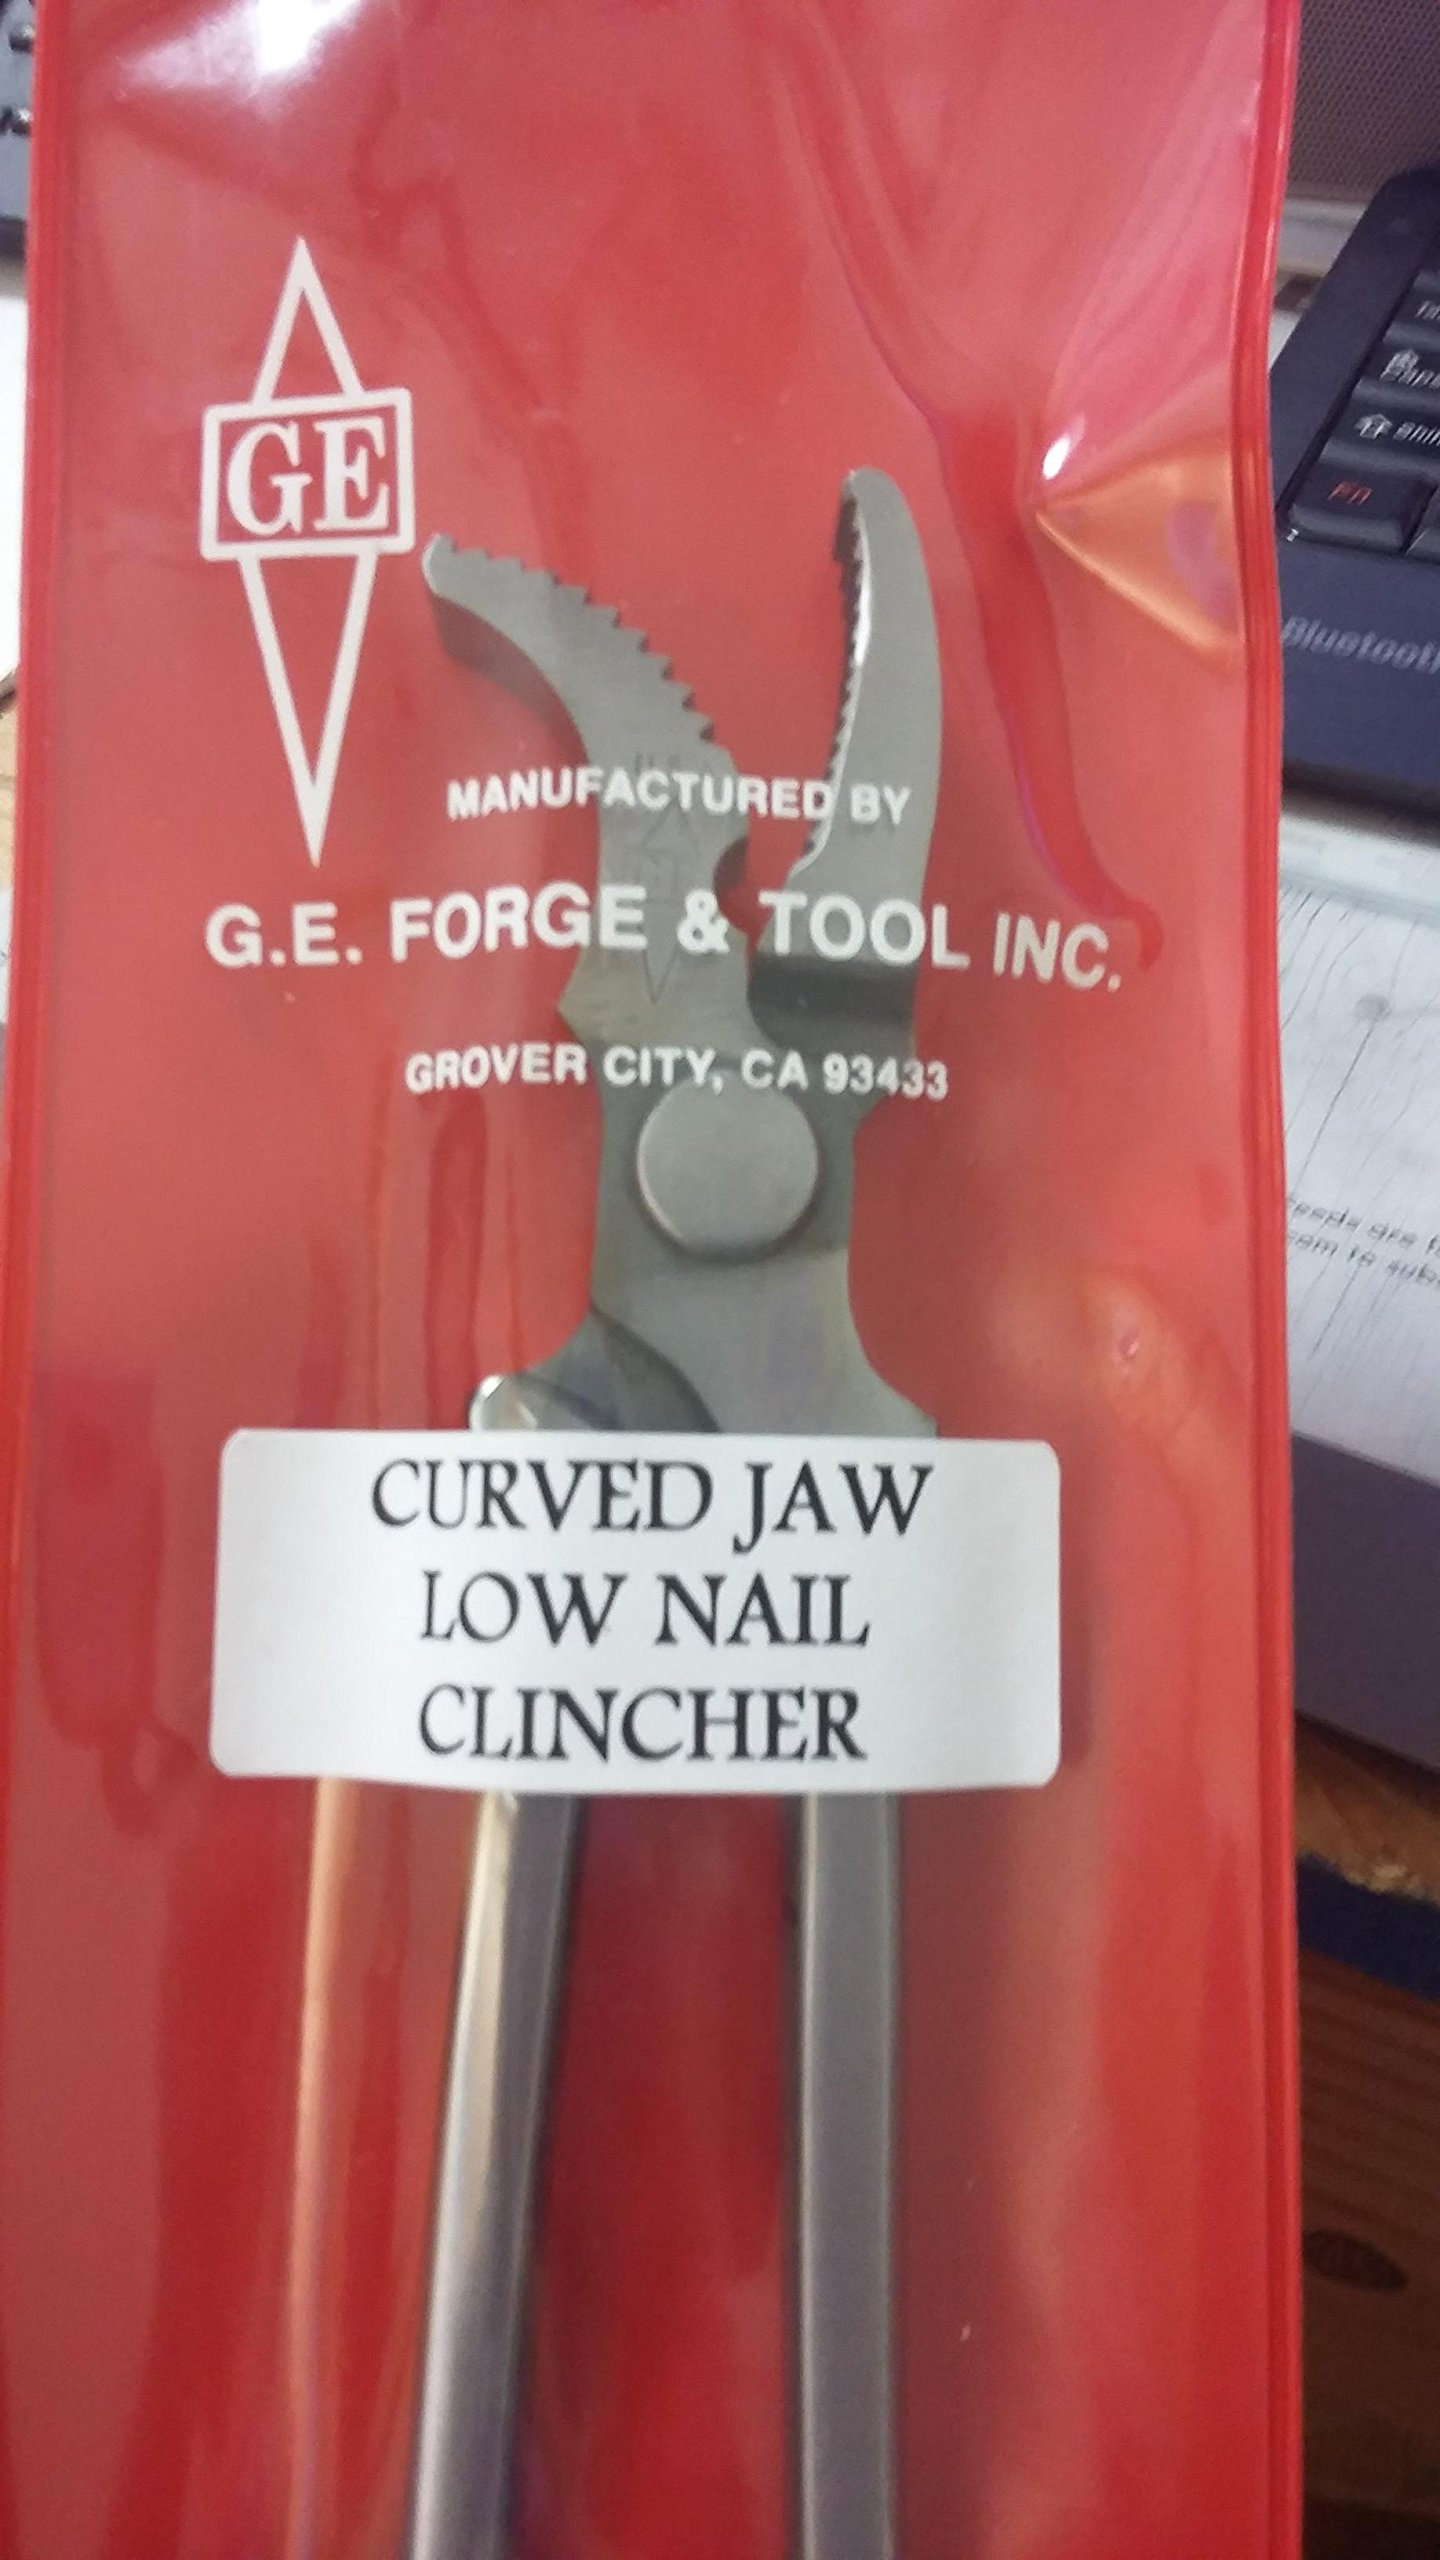 GE CURVED JAW LOW NAIL CLINCHER